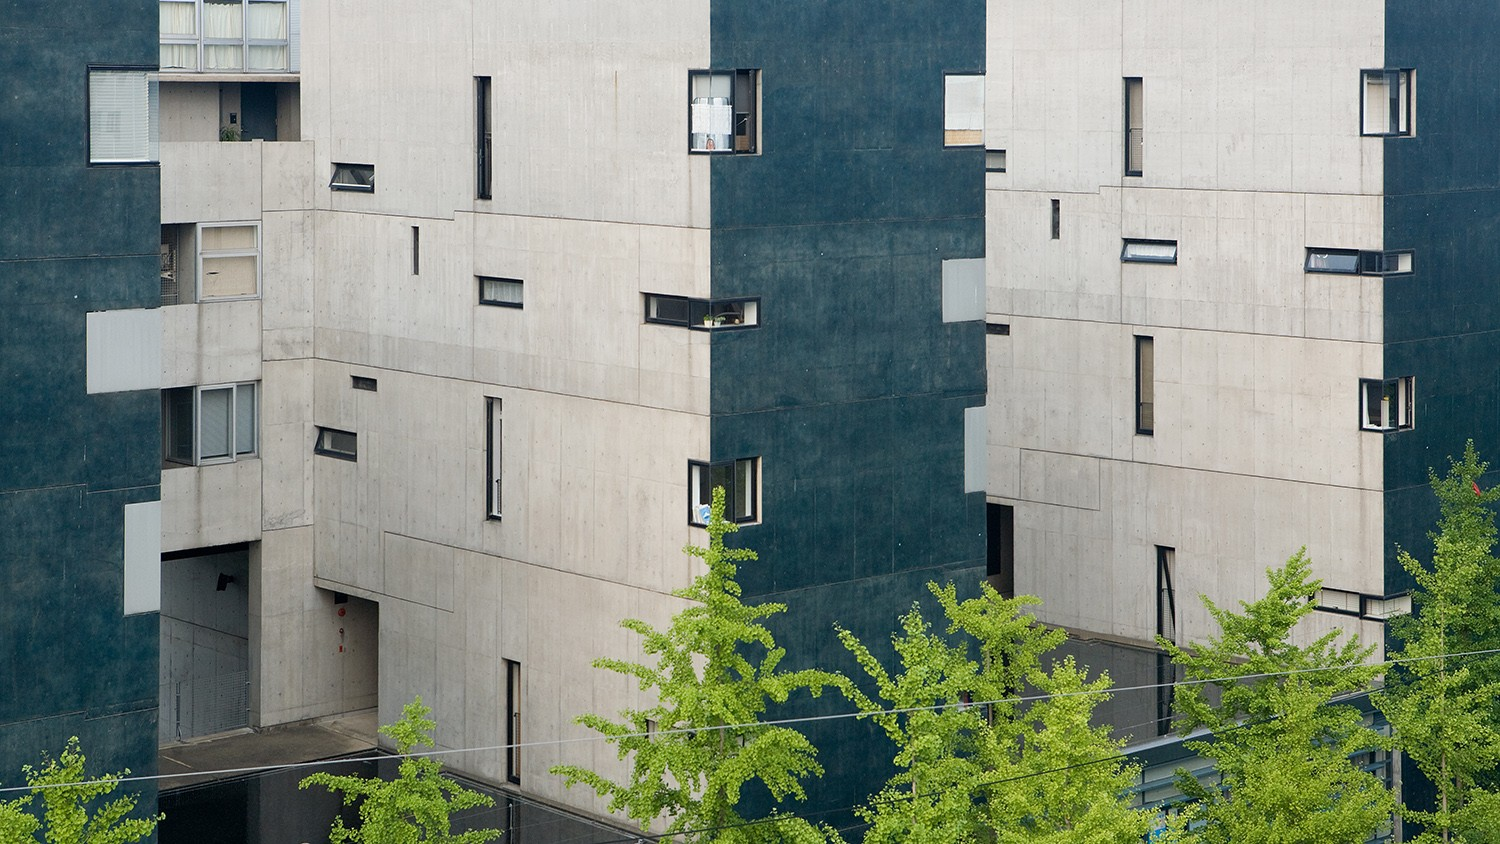 Void Space Hinged Space Housing Steven Holl Architects